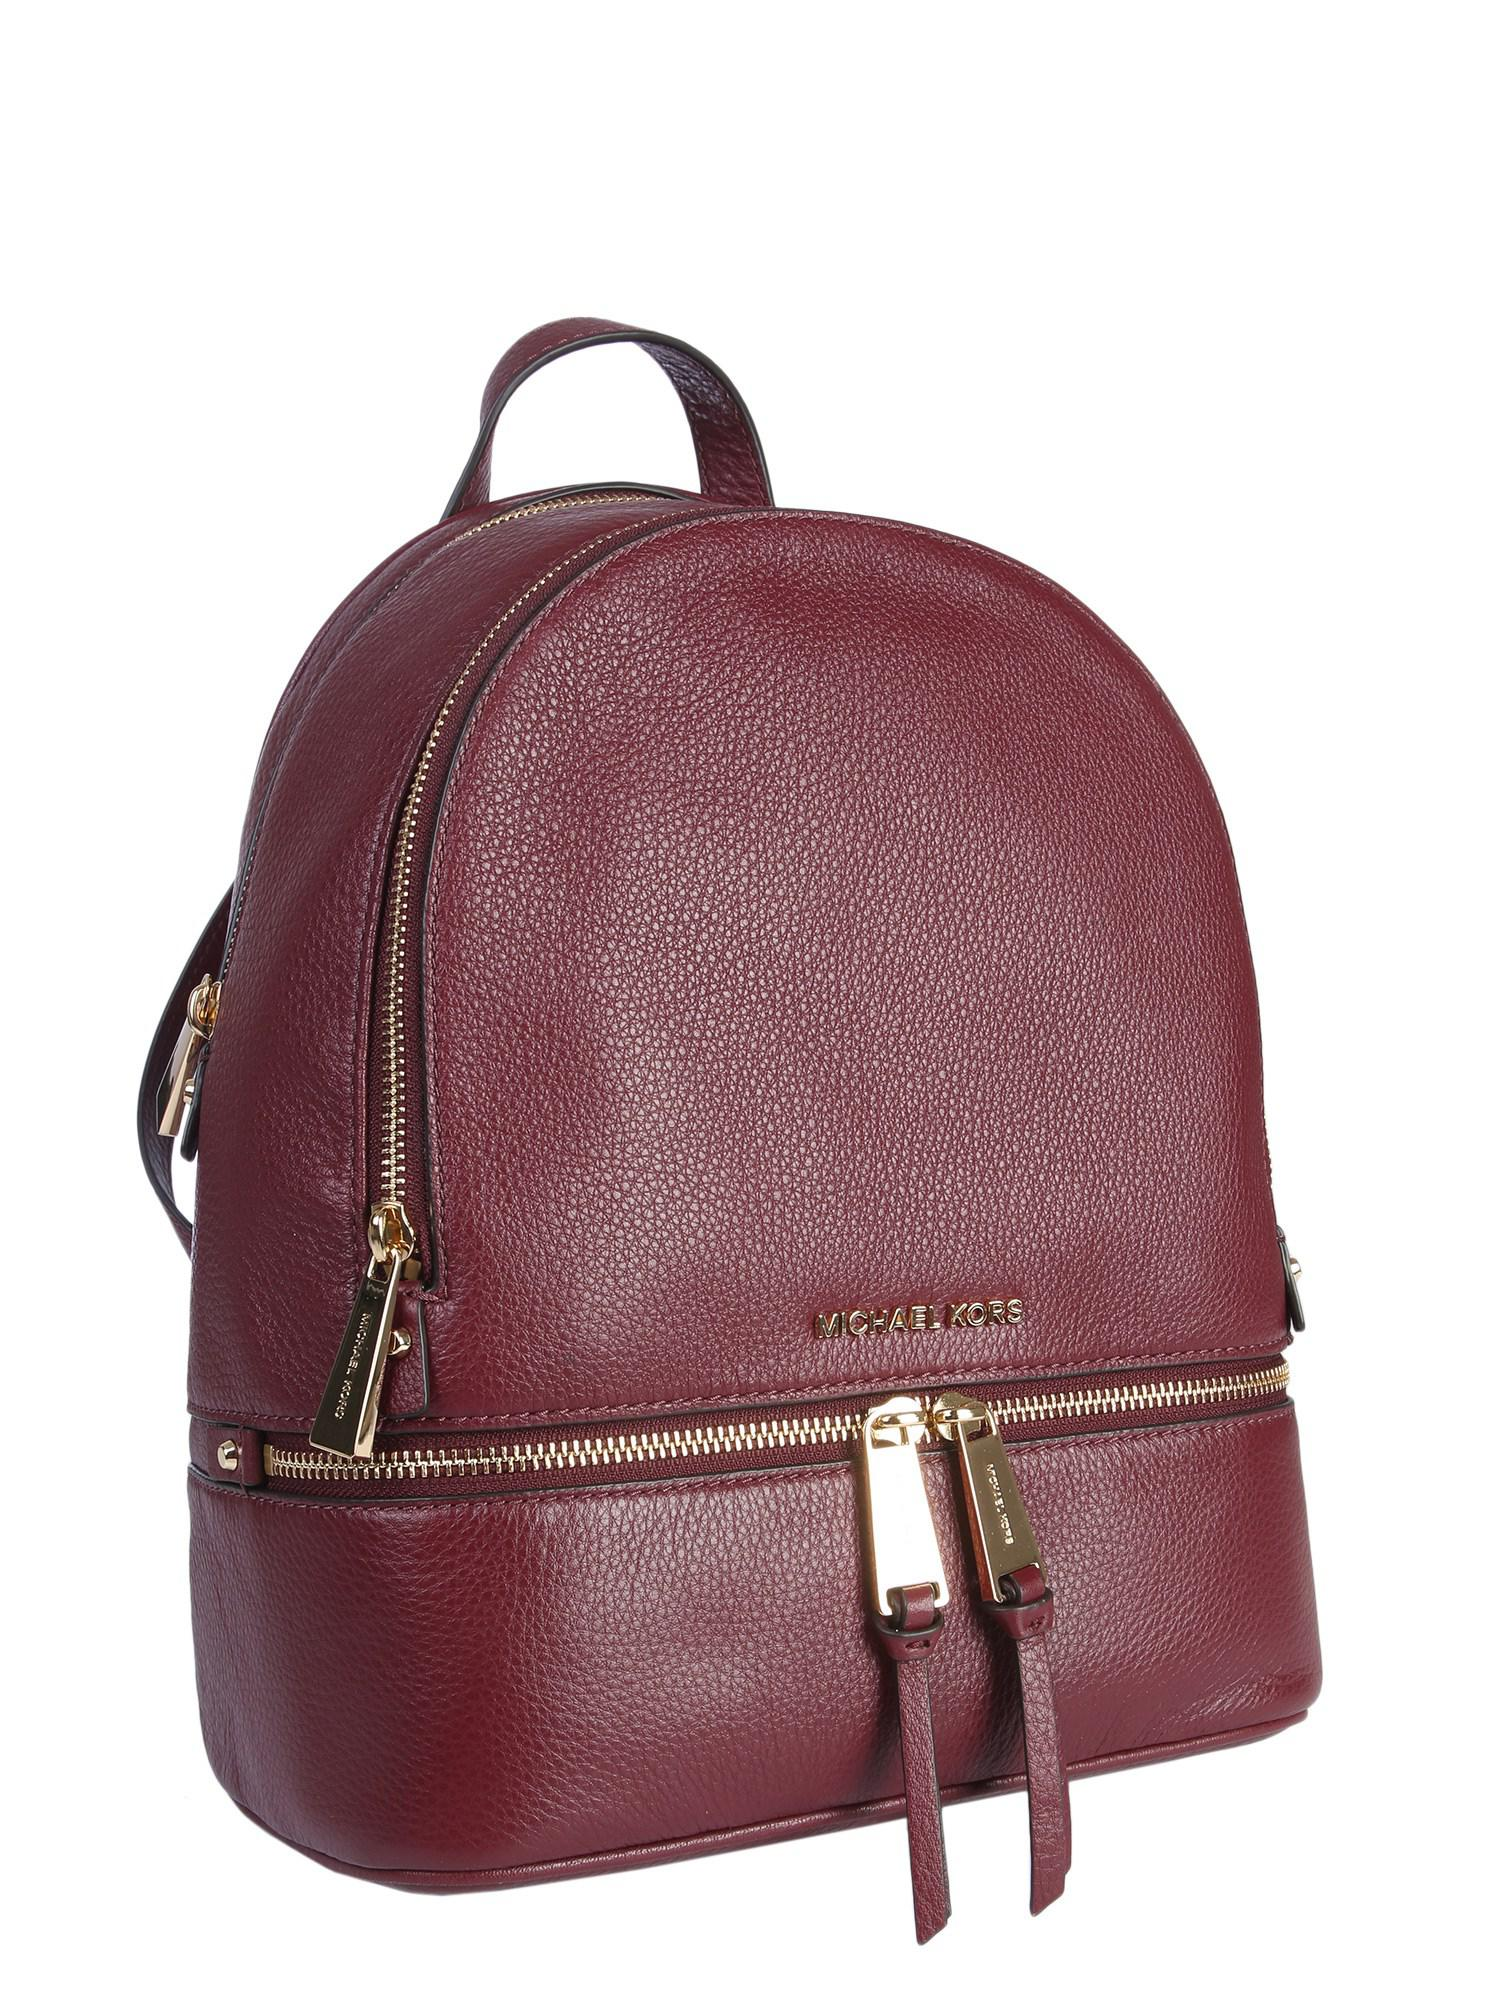 b73fde0ca3d39 MICHAEL Michael Kors - Purple Medium Rhea Bottled Leather Zip Backpack -  Lyst. View fullscreen